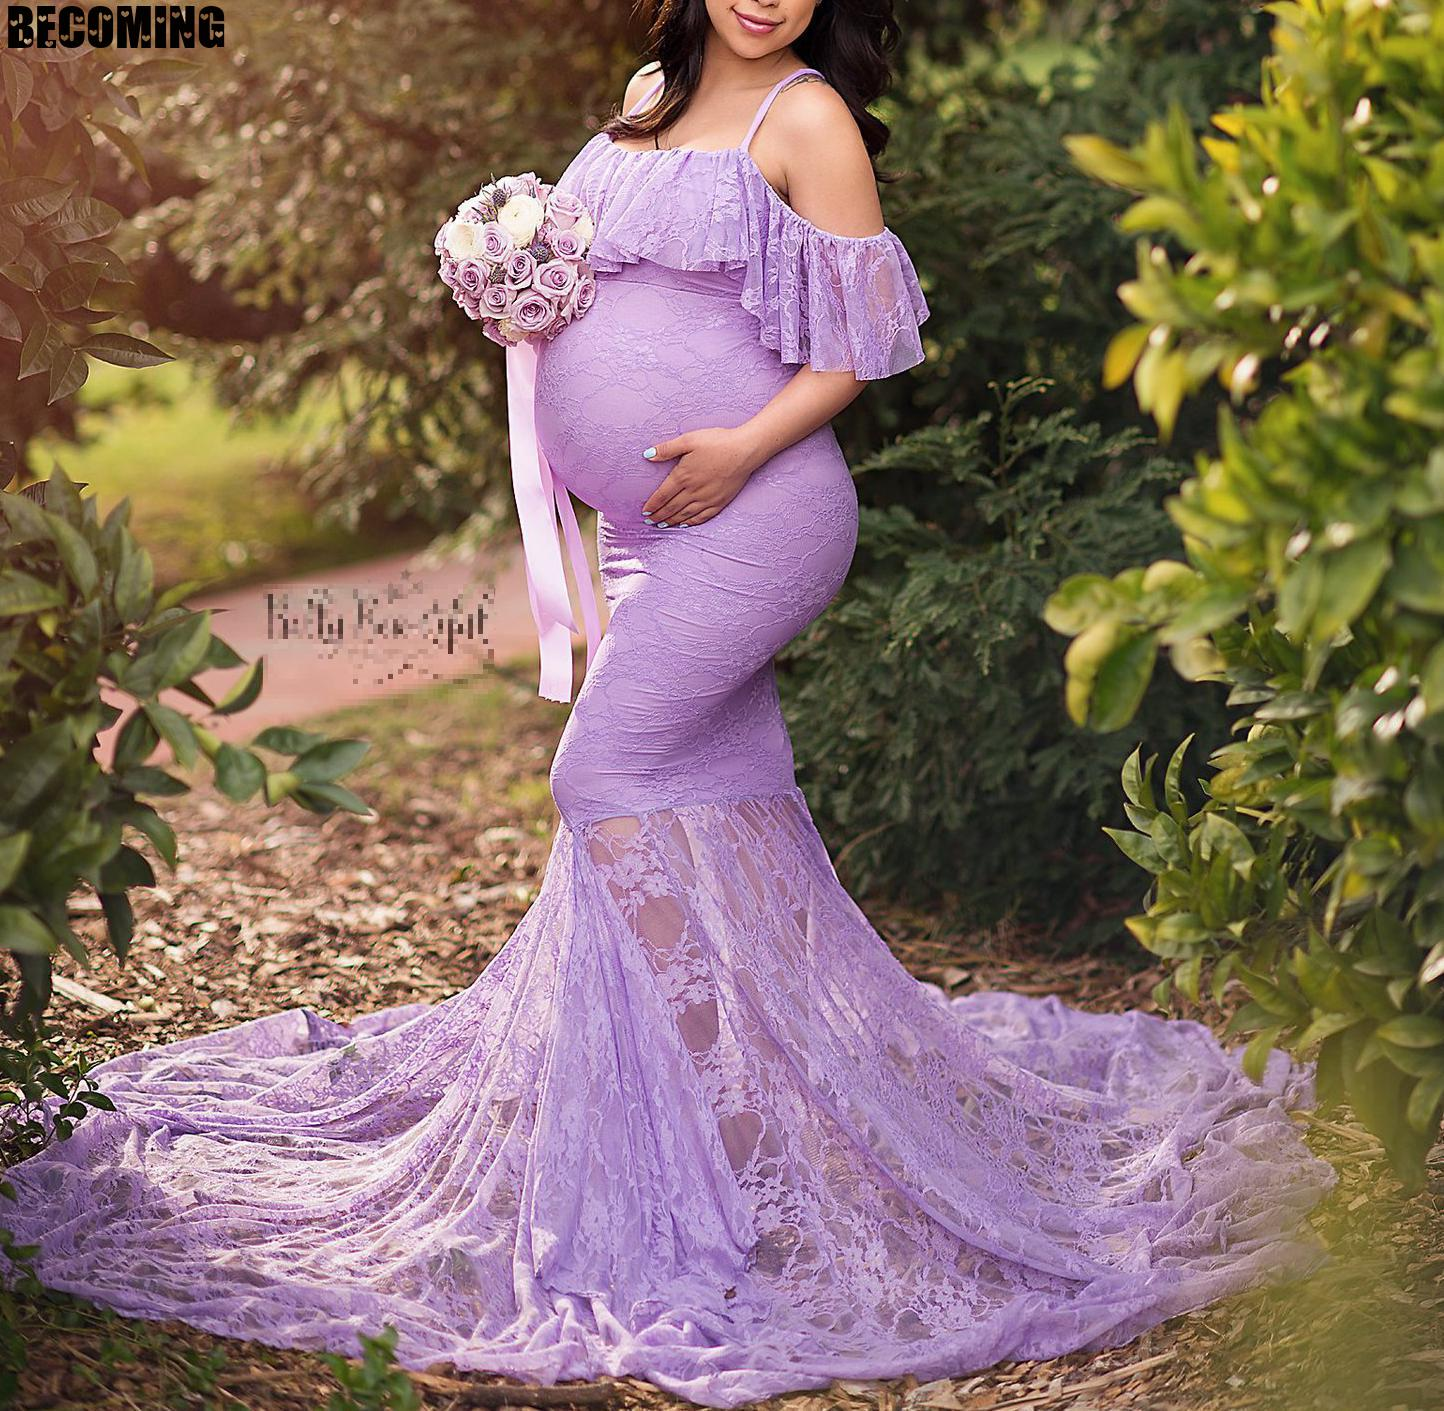 Maternity Dress Photo Shoot Lace Pregnancy Dress Women Maxi Clothes For Pregnancy Lady Big Maternity Gown Dress For Photography enlarge